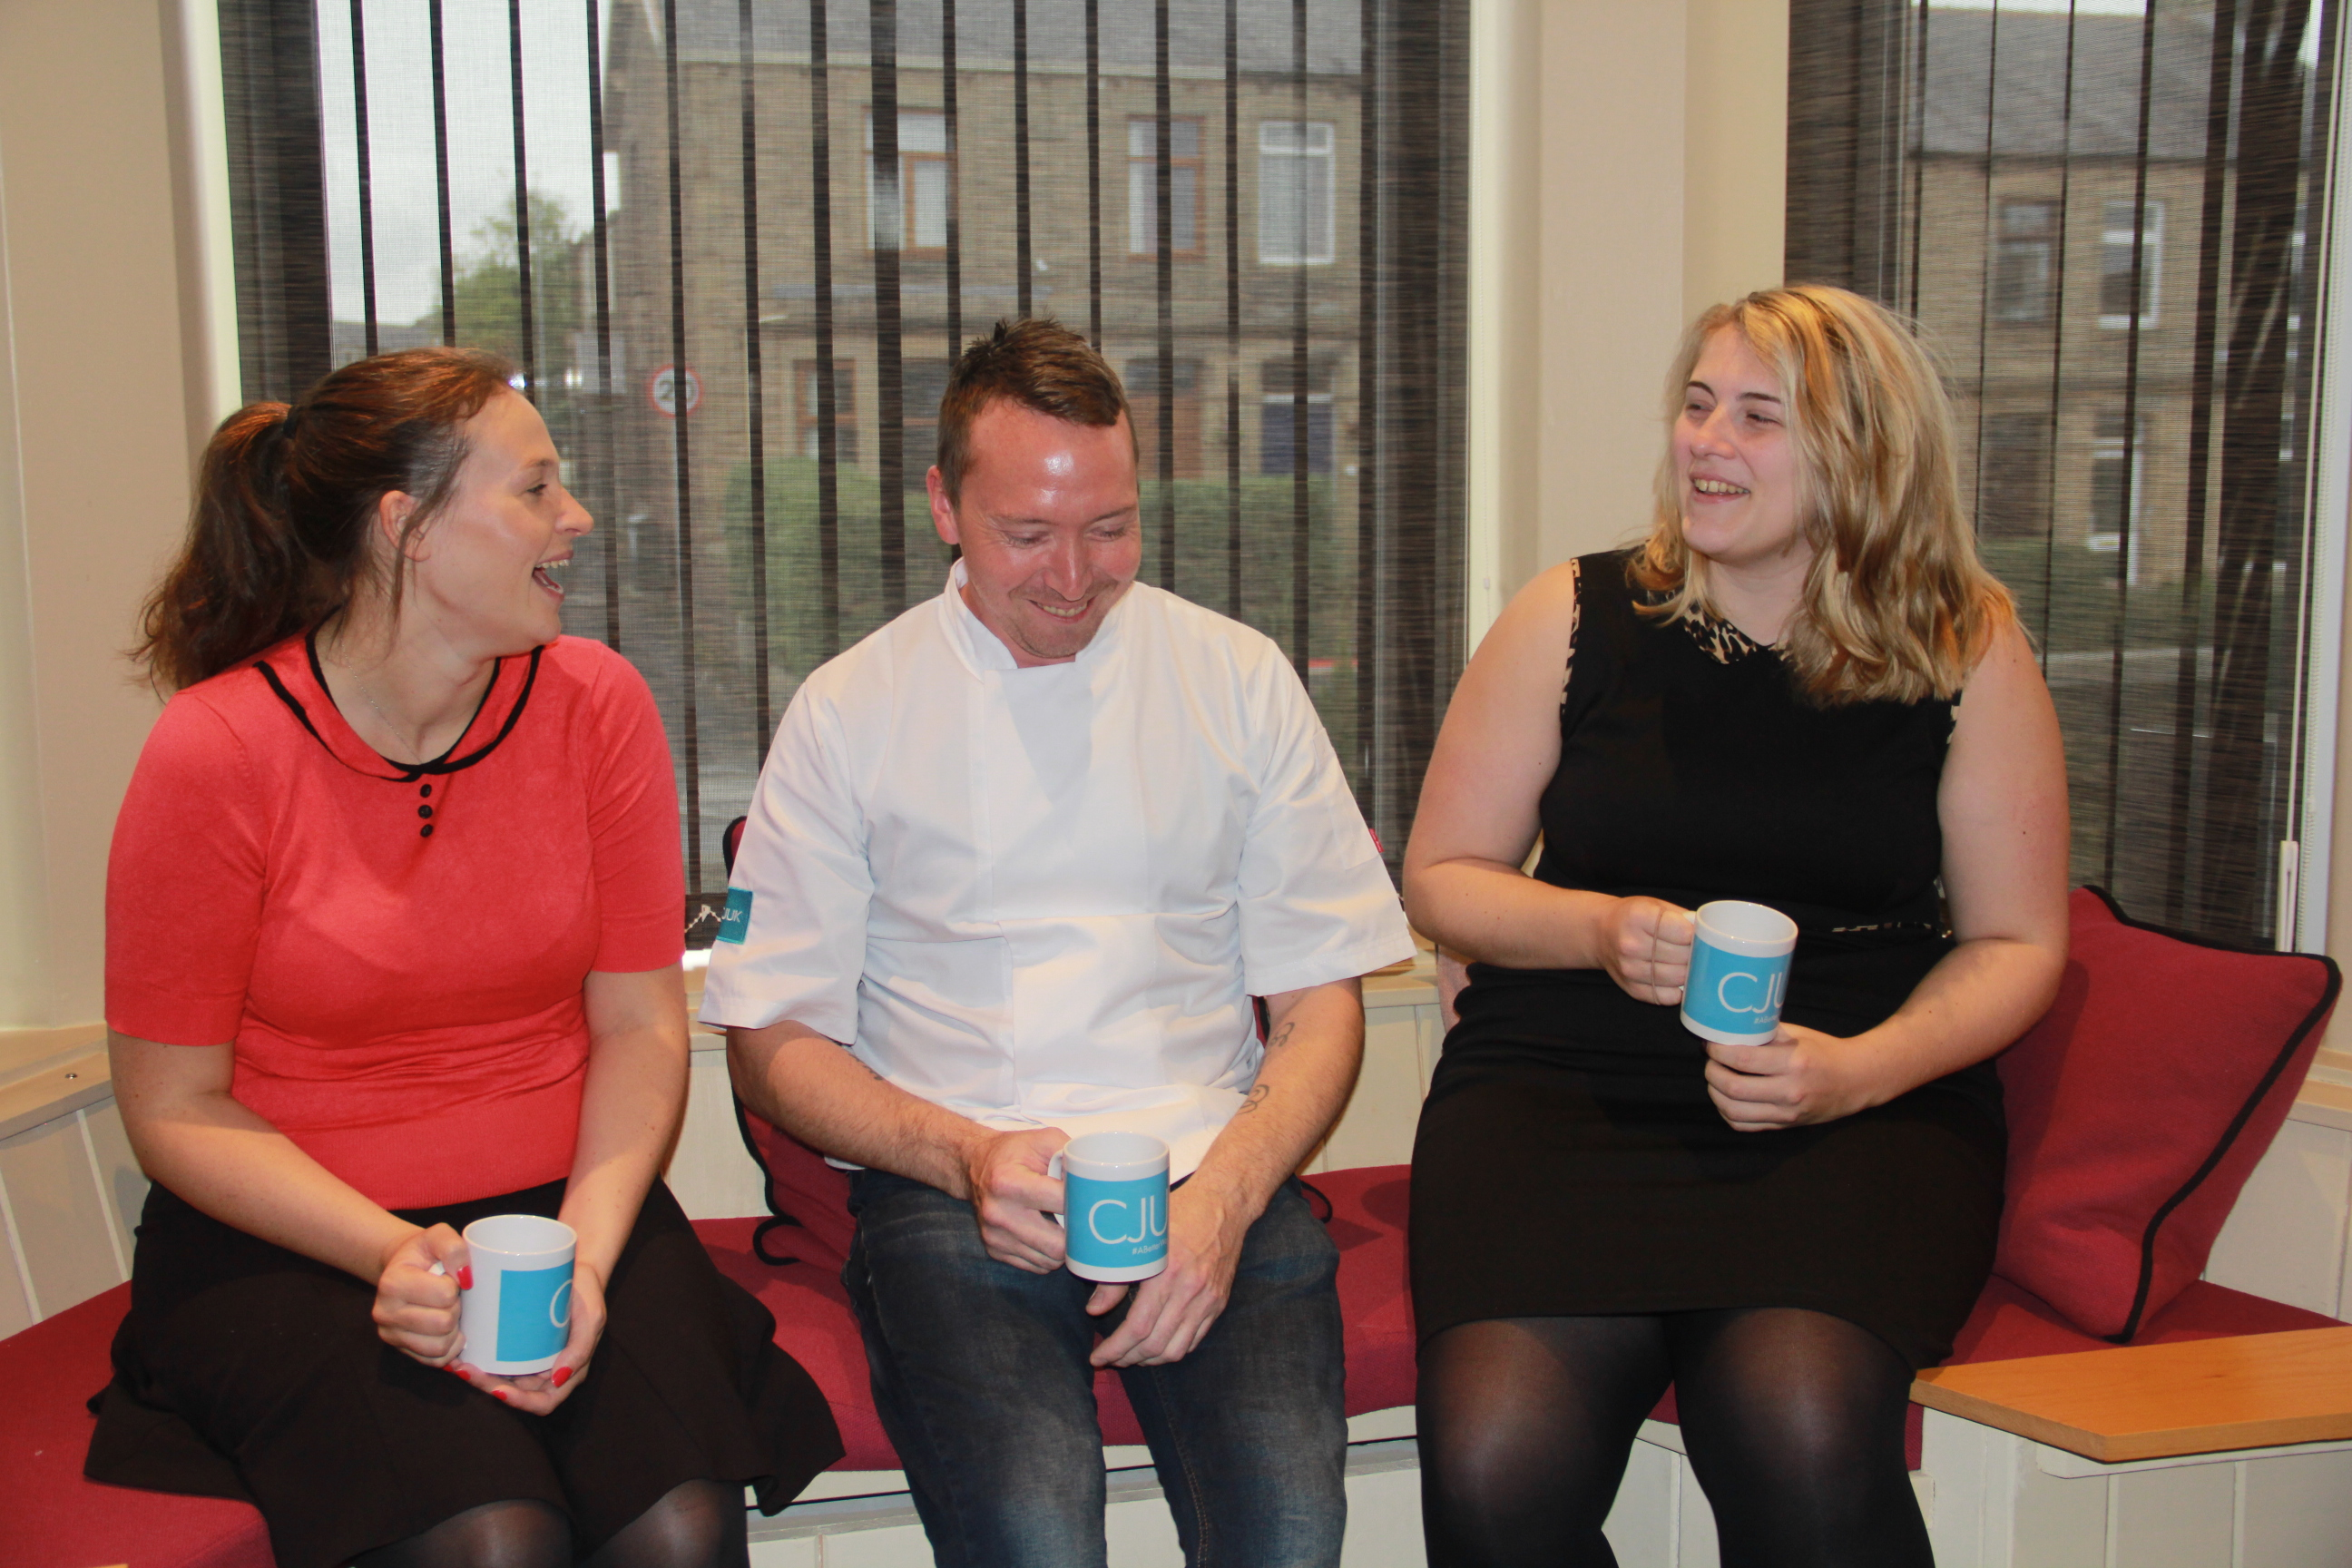 Keith enjoying a cuppa with CJUK Talent Manager, Susannah (left) and Account Manager, Laura (right)